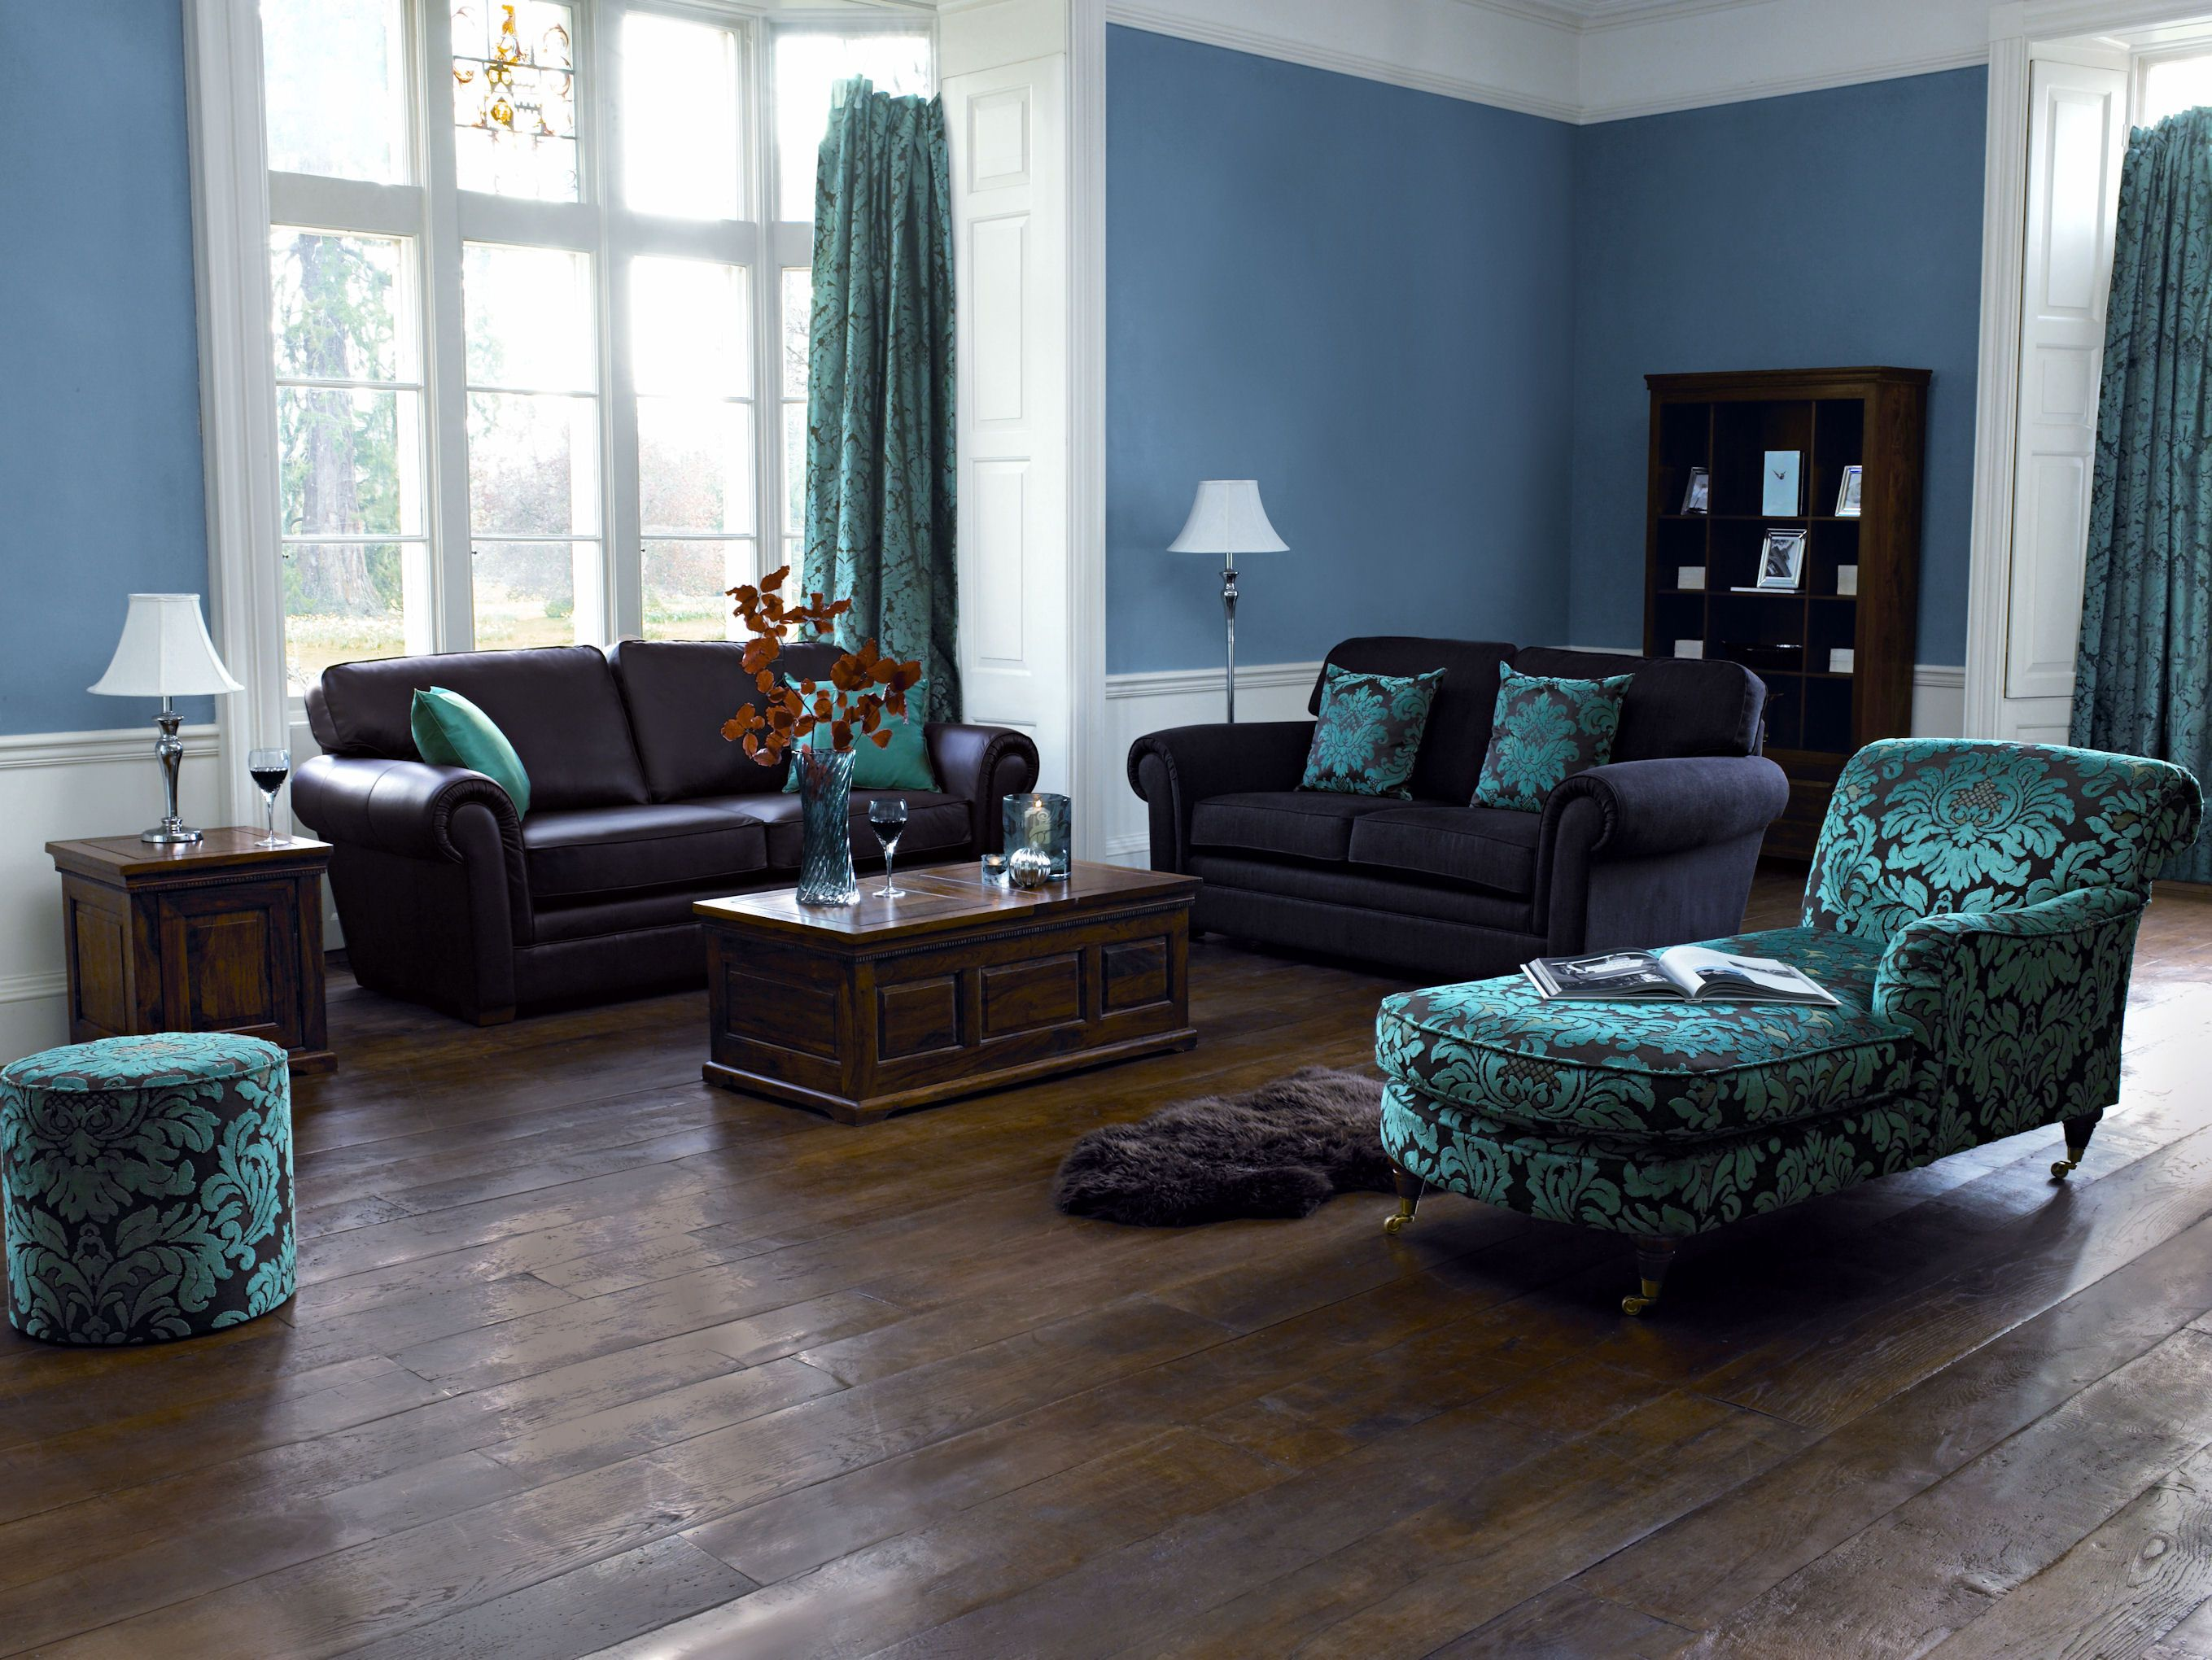 Blue Living Room Decor Ideas Blue Paint Color Ideas For Living Room With Dark Furniture And